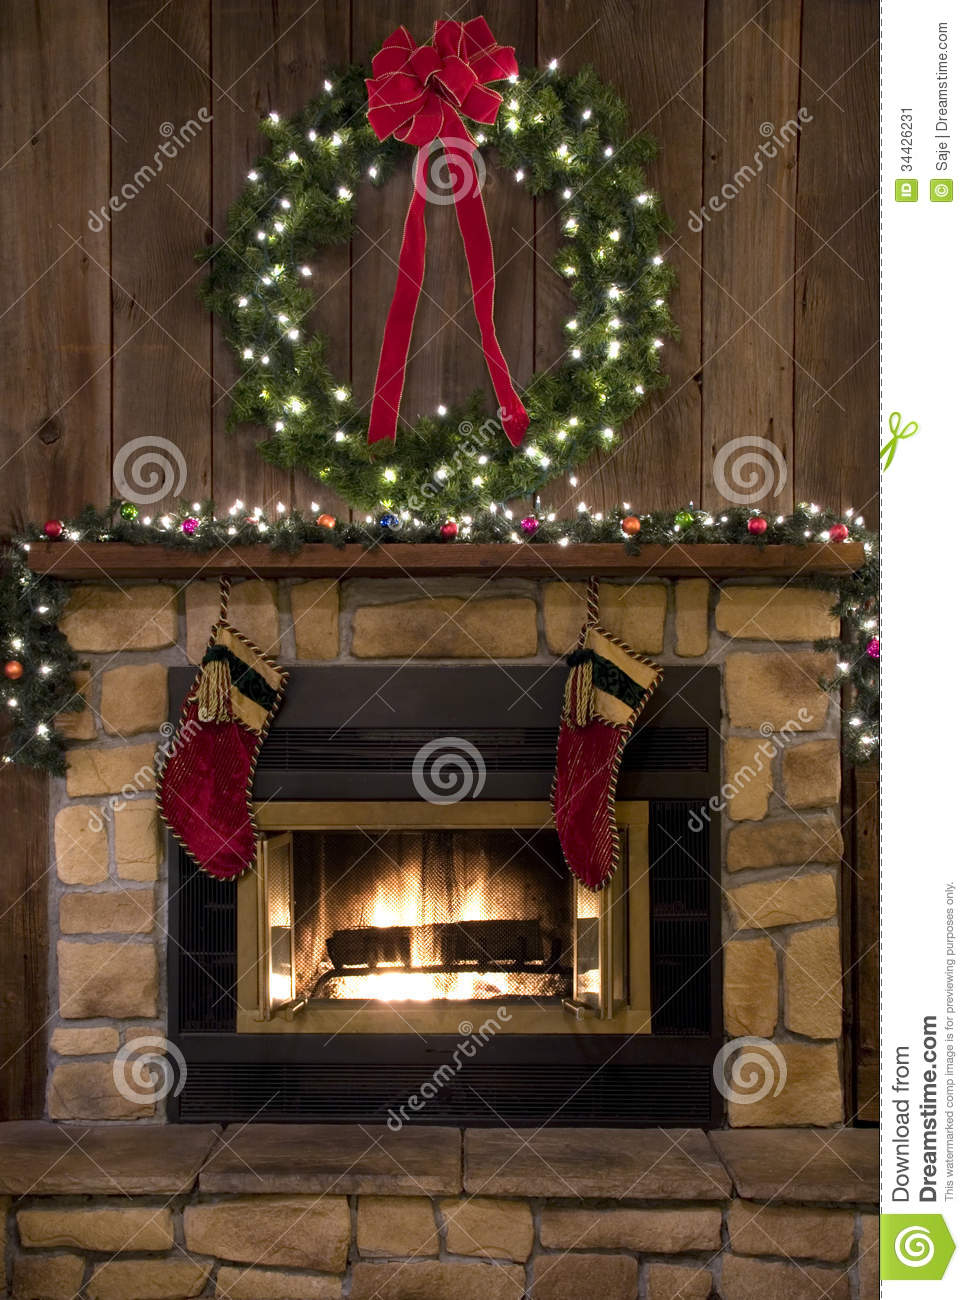 christmas fireplace hearth with wreath and stockings stock image